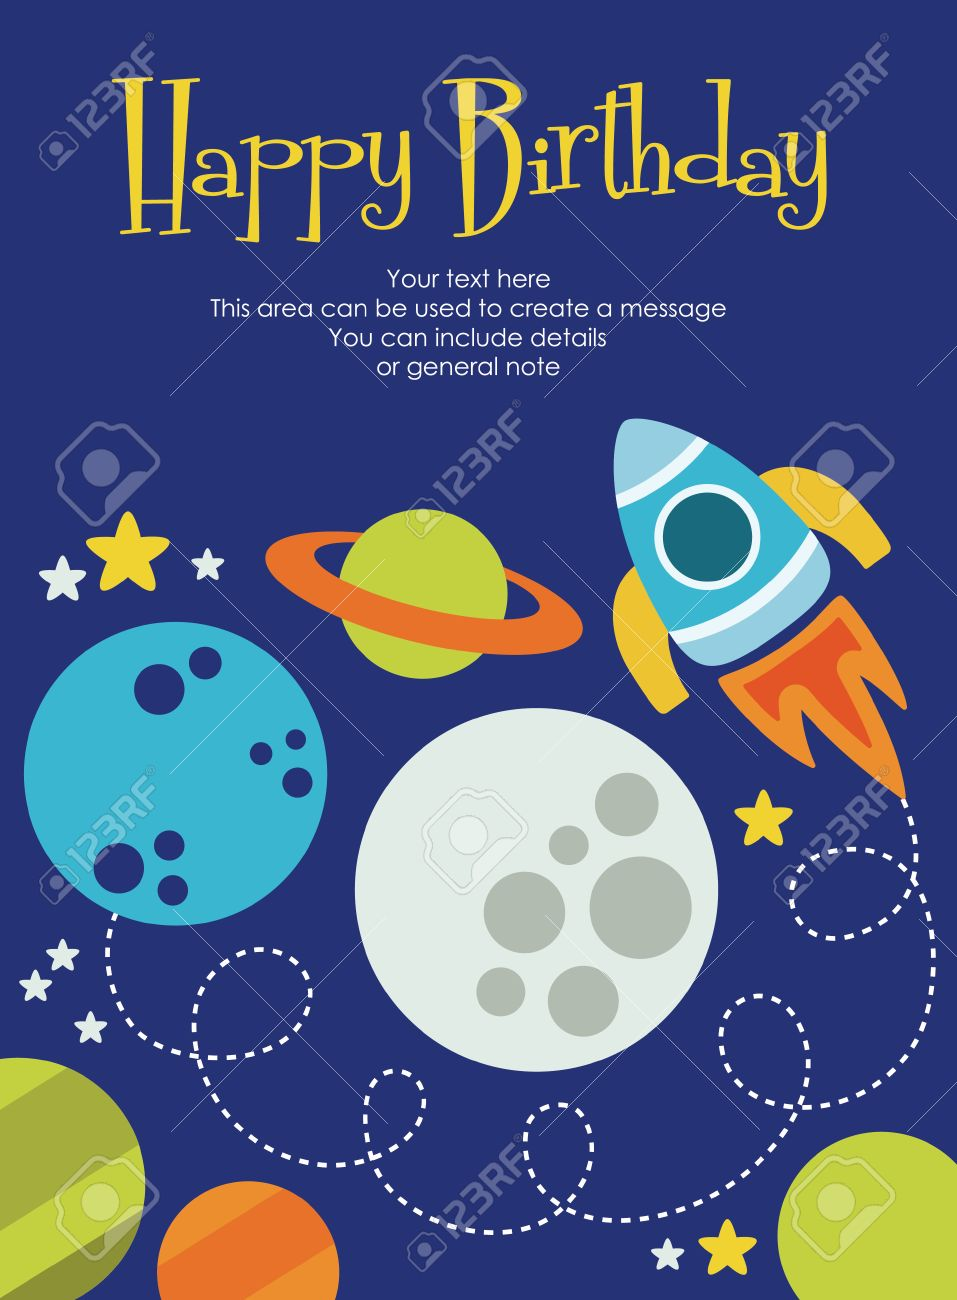 Space Happy Birthday Card Design Vector Illustration Royalty Free – Happy Birthday Card Design Free